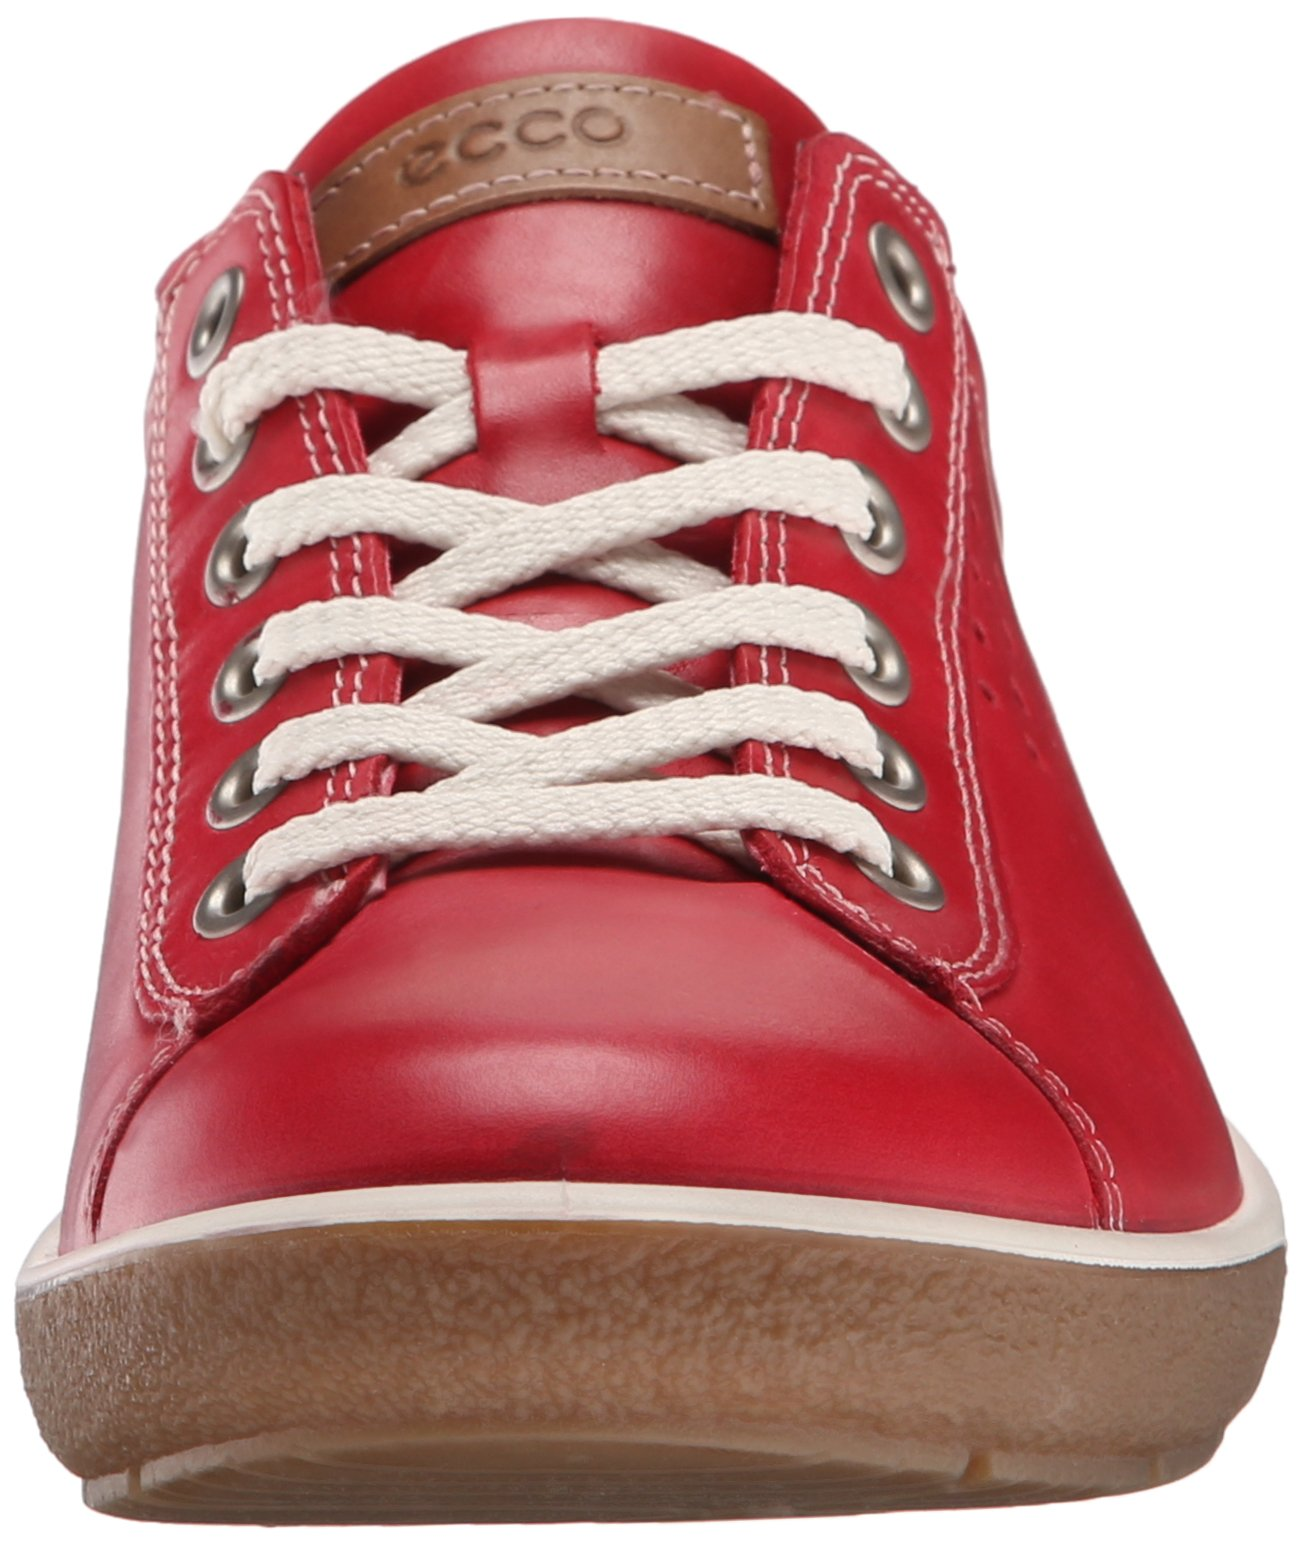 ECCO Footwear Womens Chase Tie Sneaker, Chilli Red, 39 EU/8-8.5 M US by ECCO (Image #4)